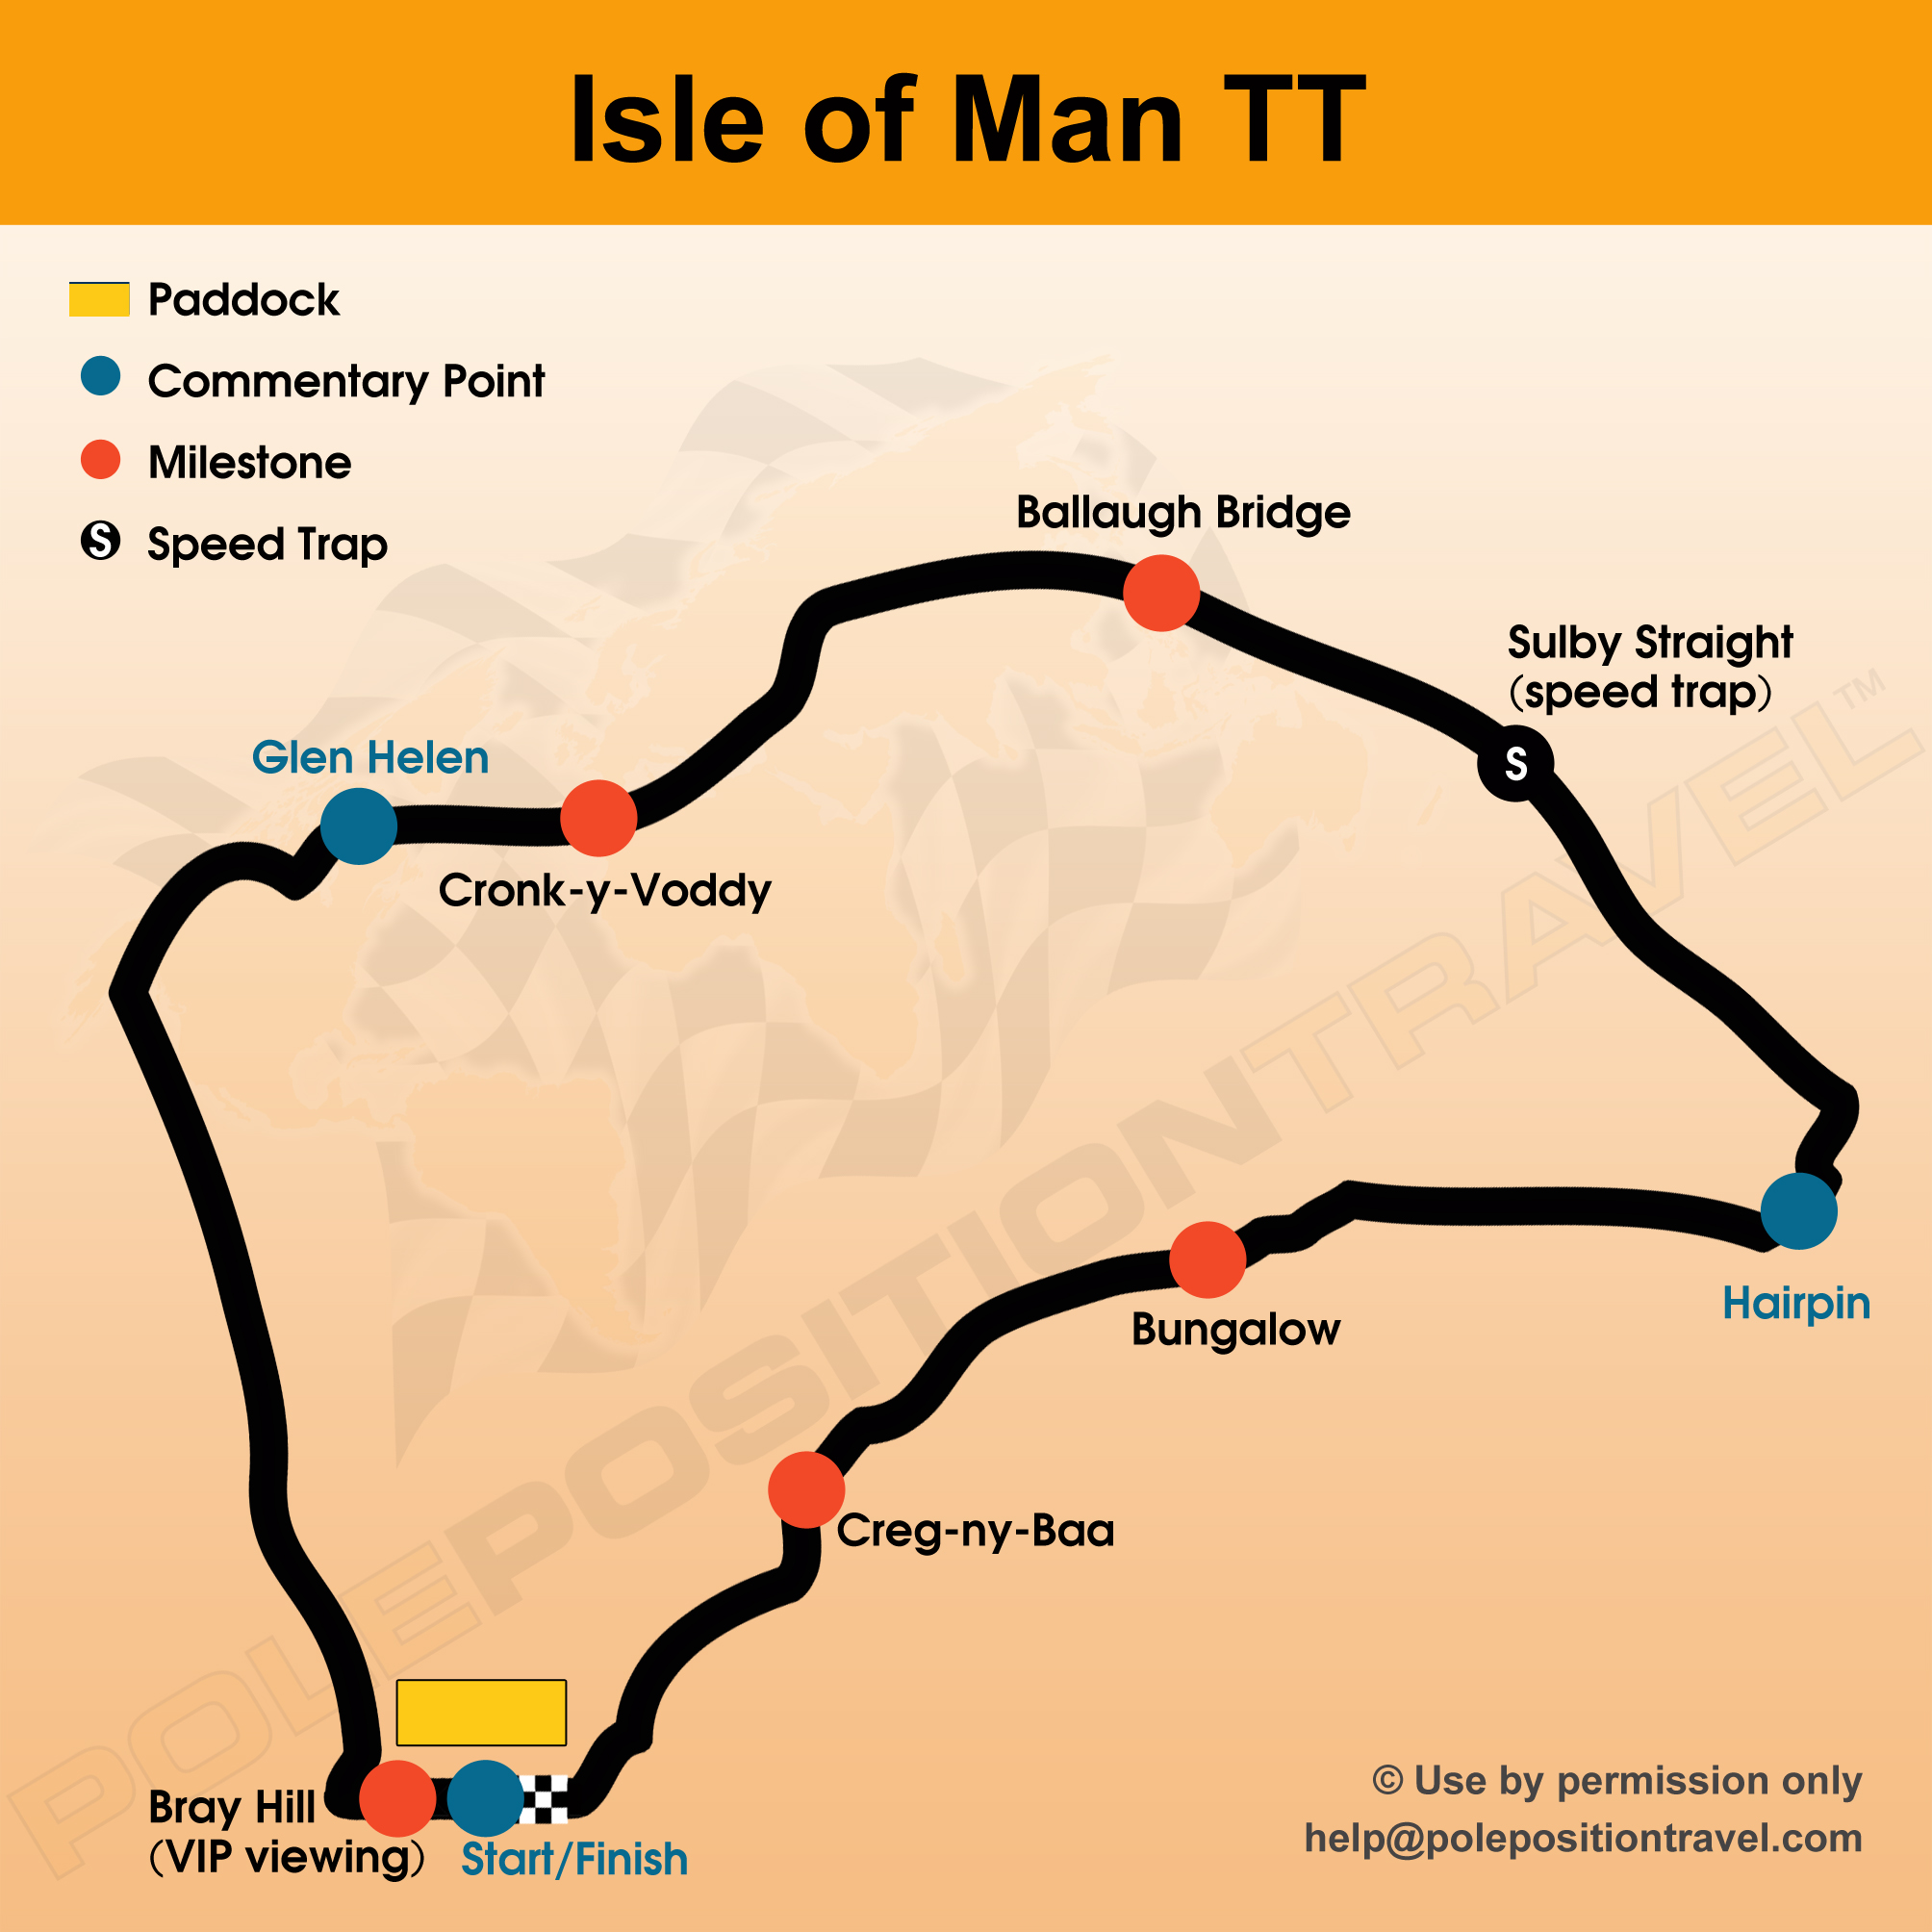 Isle of Man TT 2019 Circuit map